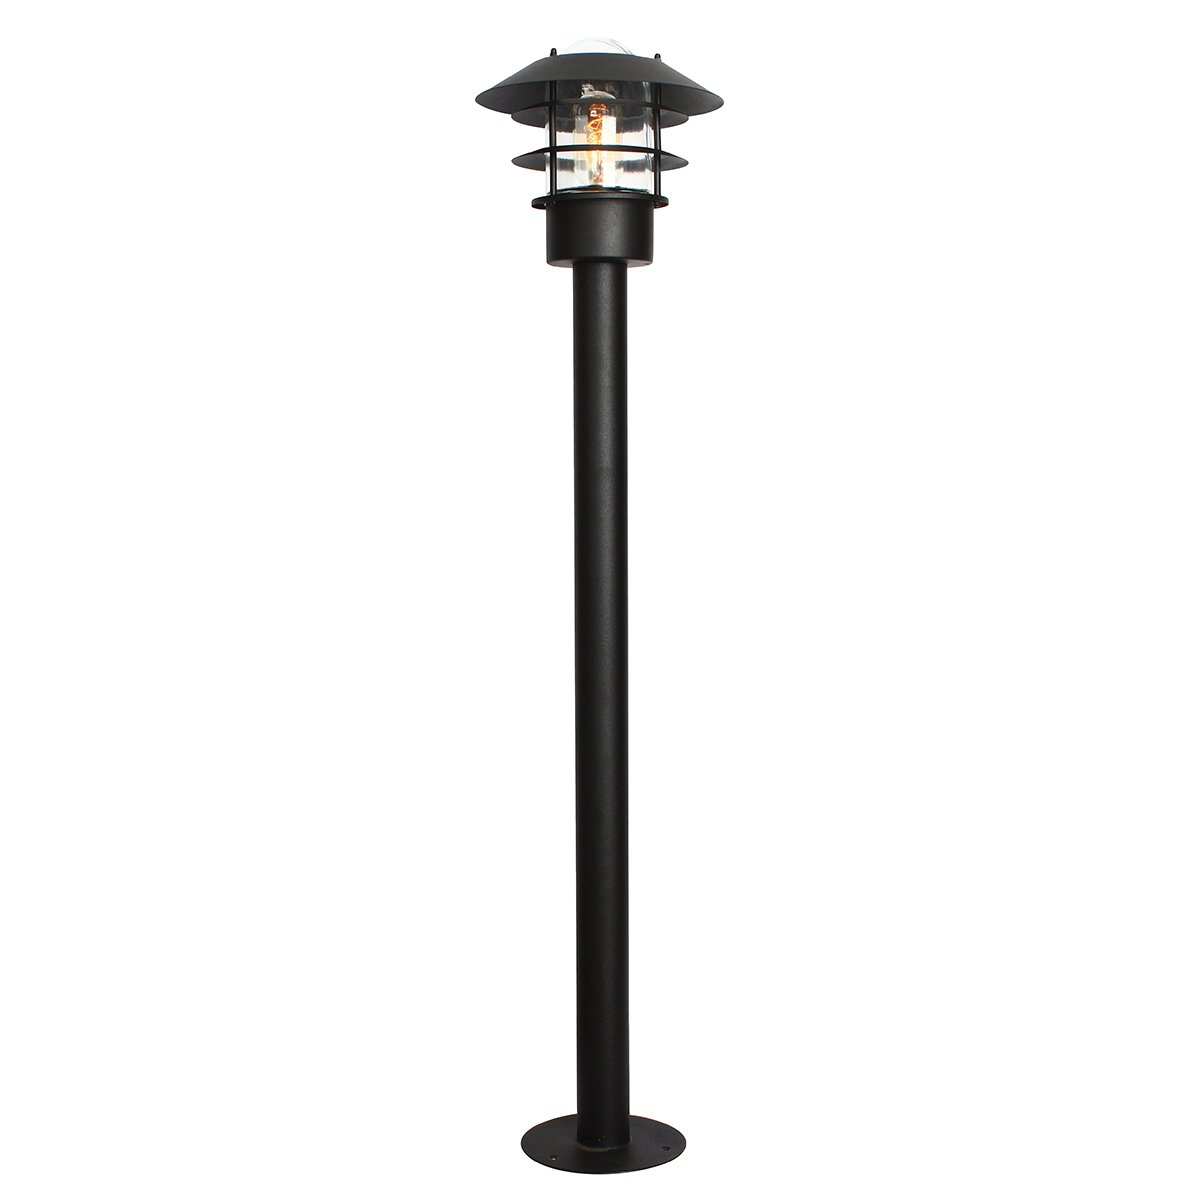 Elstead Helsingor Bollard Stainless Steel Black Finish